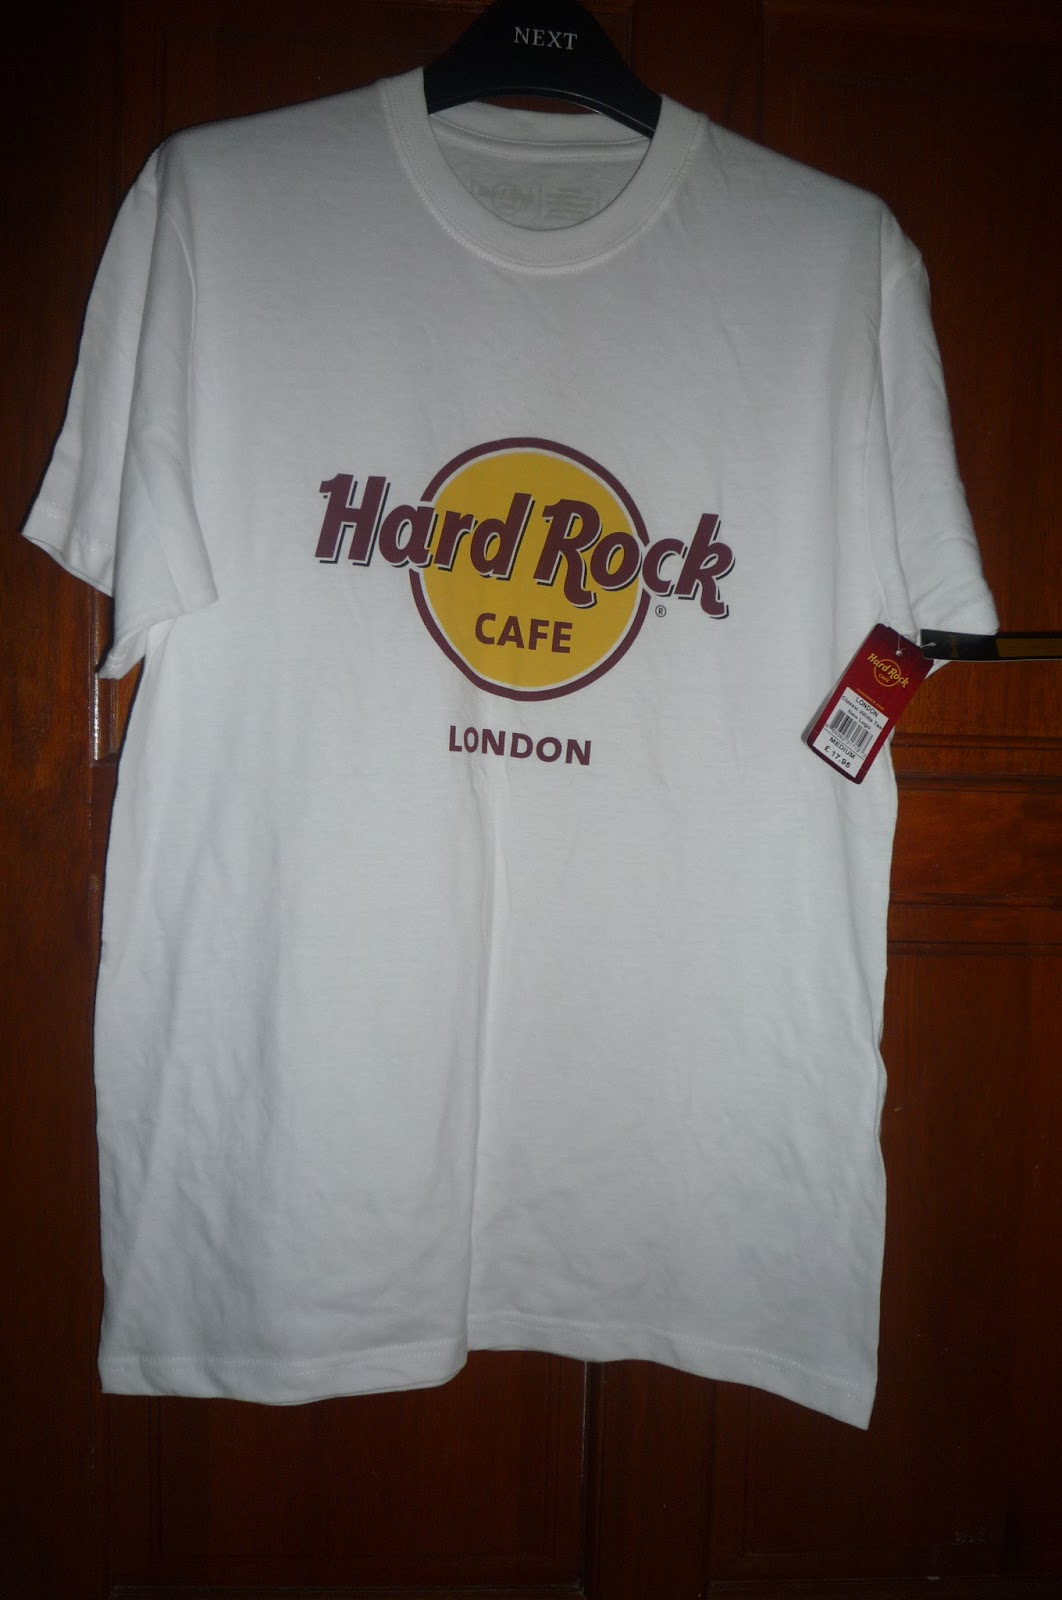 Hard Rock Cafe London Shirt